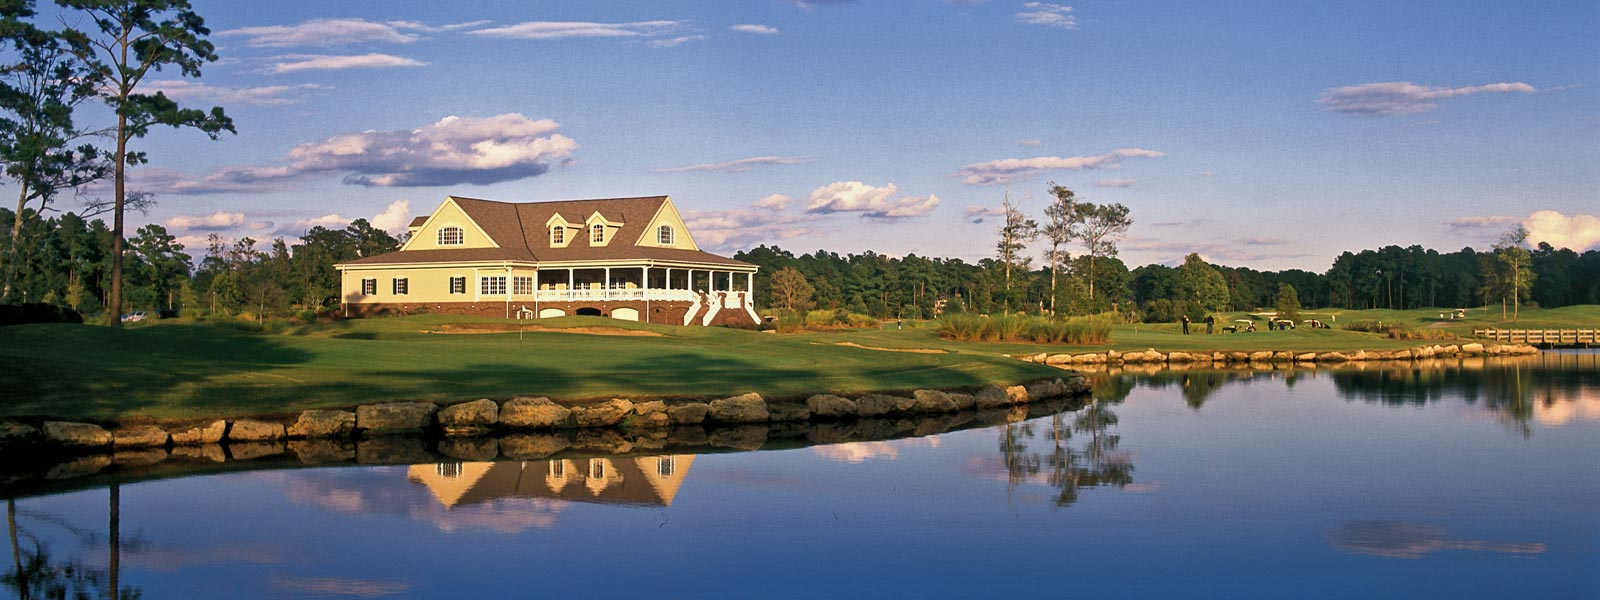 Ocean Ridge Plantation | NC Coastal Community near Wilmington NC